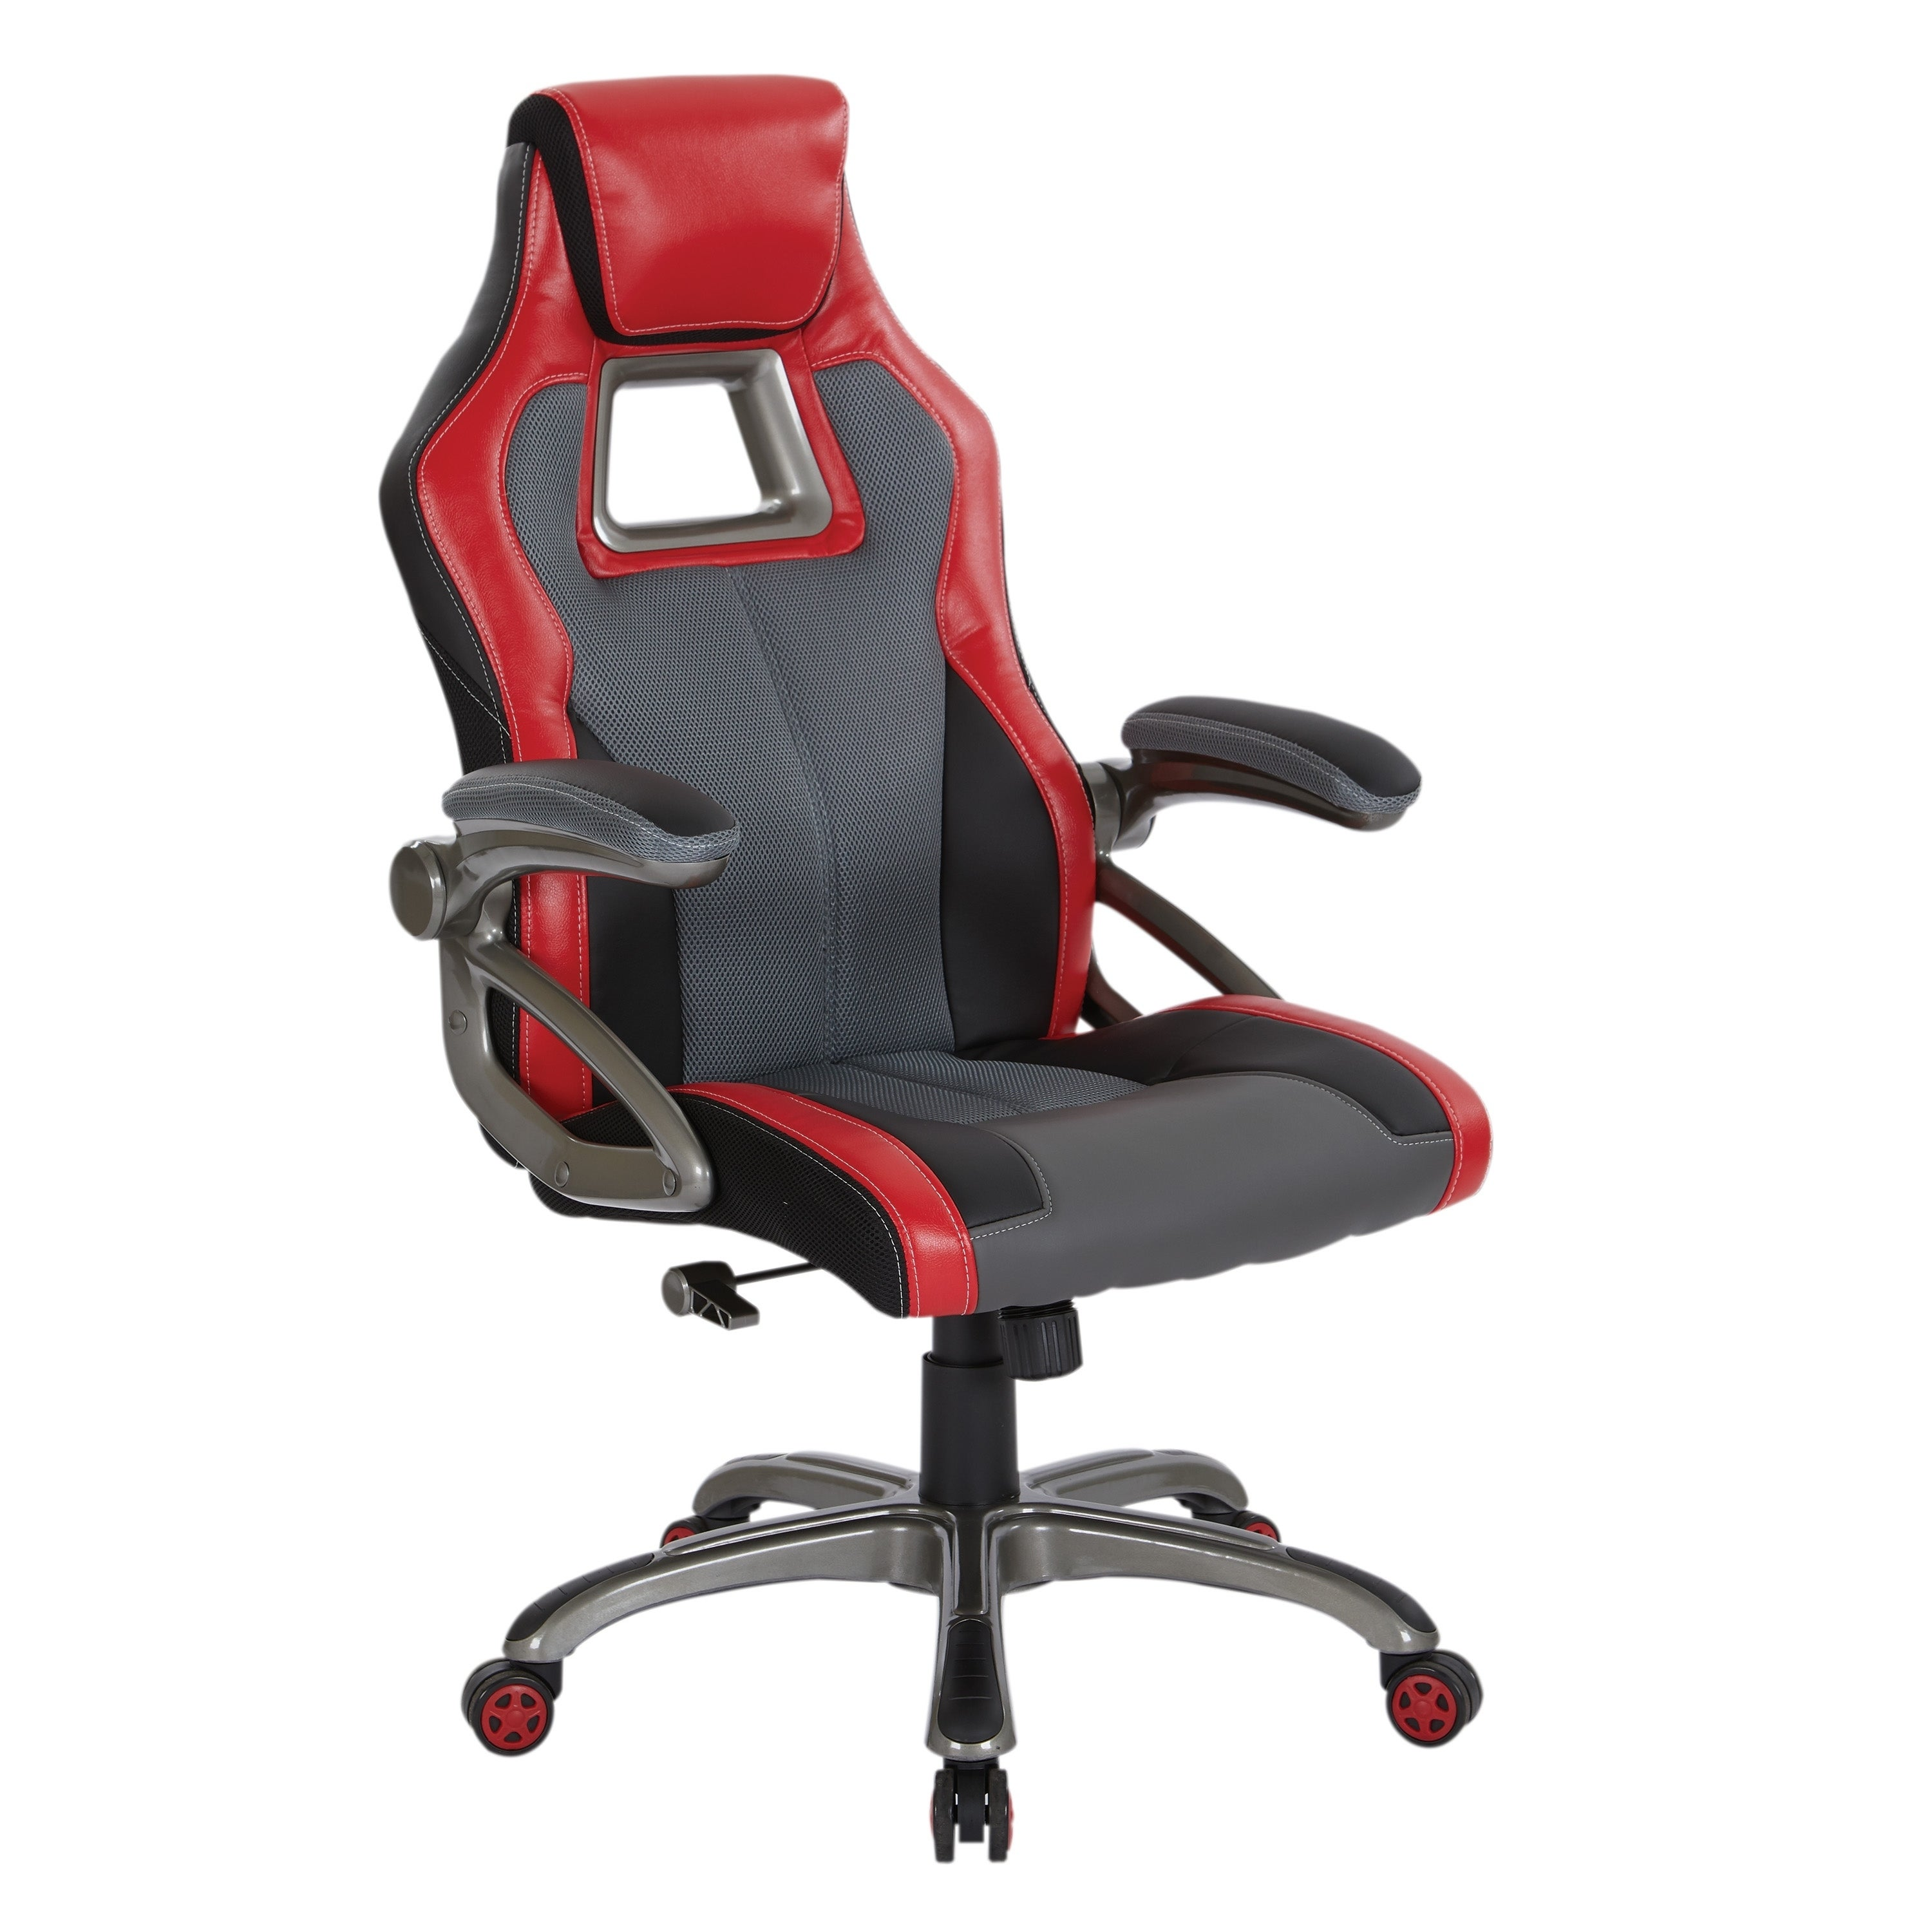 Shop Race Car Chair in Charcoal Grey with Red Trim and White Stitching - On Sale - Free Shipping Today - Overstock.com - 21527002  sc 1 st  Overstock.com & Shop Race Car Chair in Charcoal Grey with Red Trim and White ...